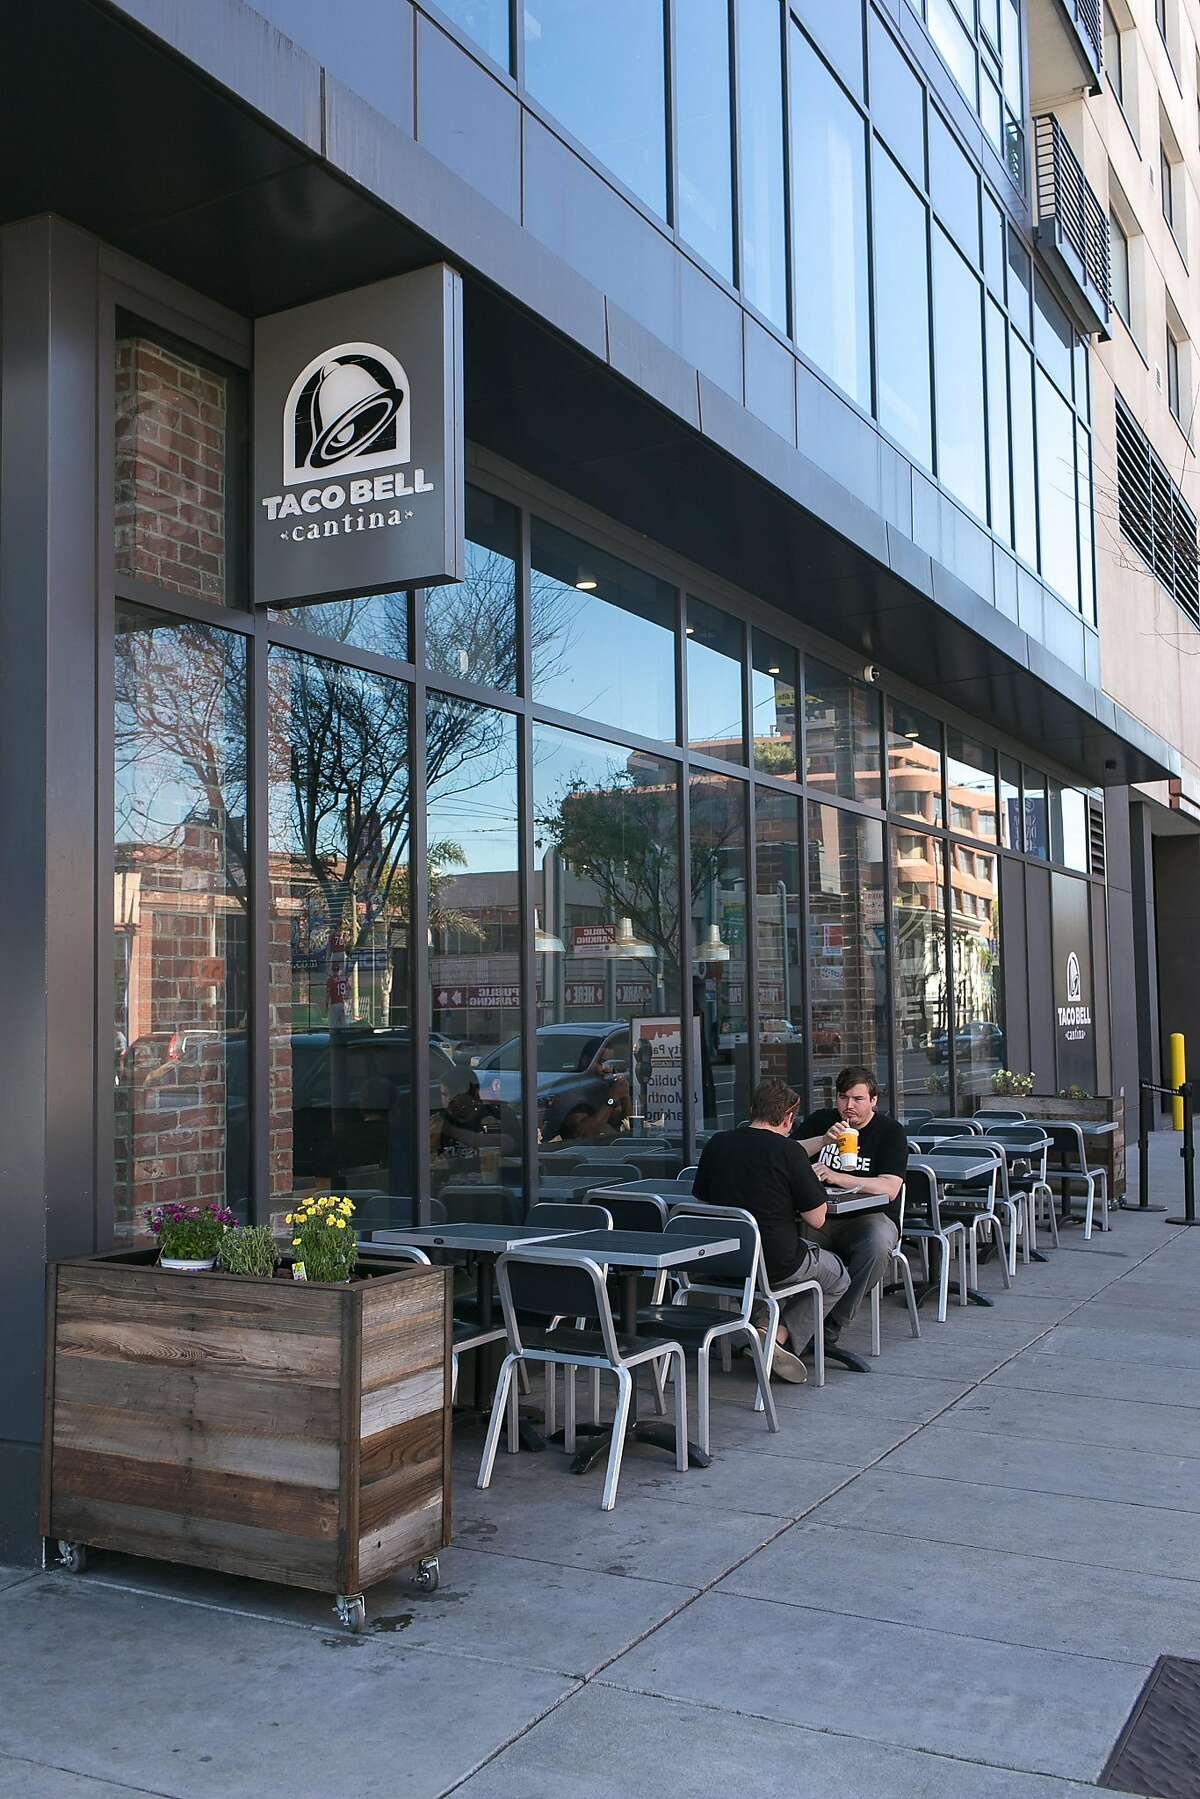 Outside seating at Taco Bell Cantina in S.F. Click through the gallery for a roundup of fast food chains the Bay Area doesn't have.